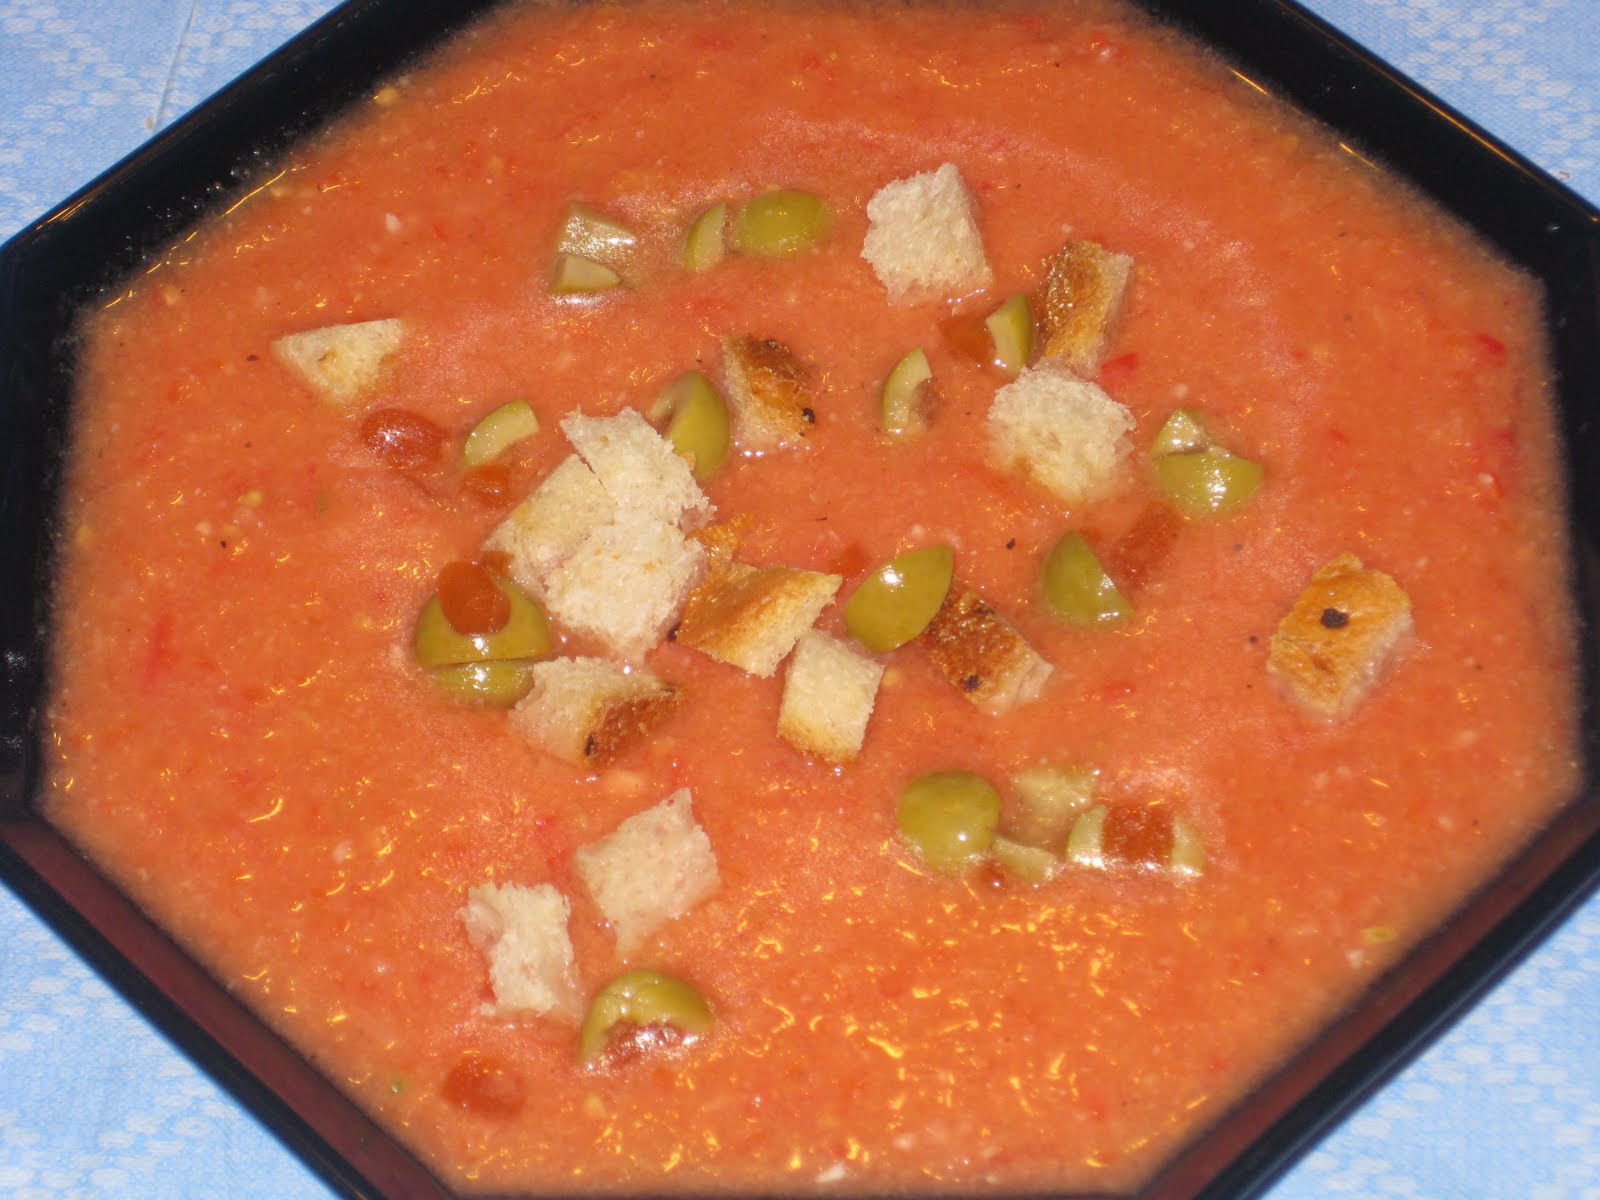 ... to Zwetschgen: Gazpacho (Cold Tomato & Vegetable Soup from Spain